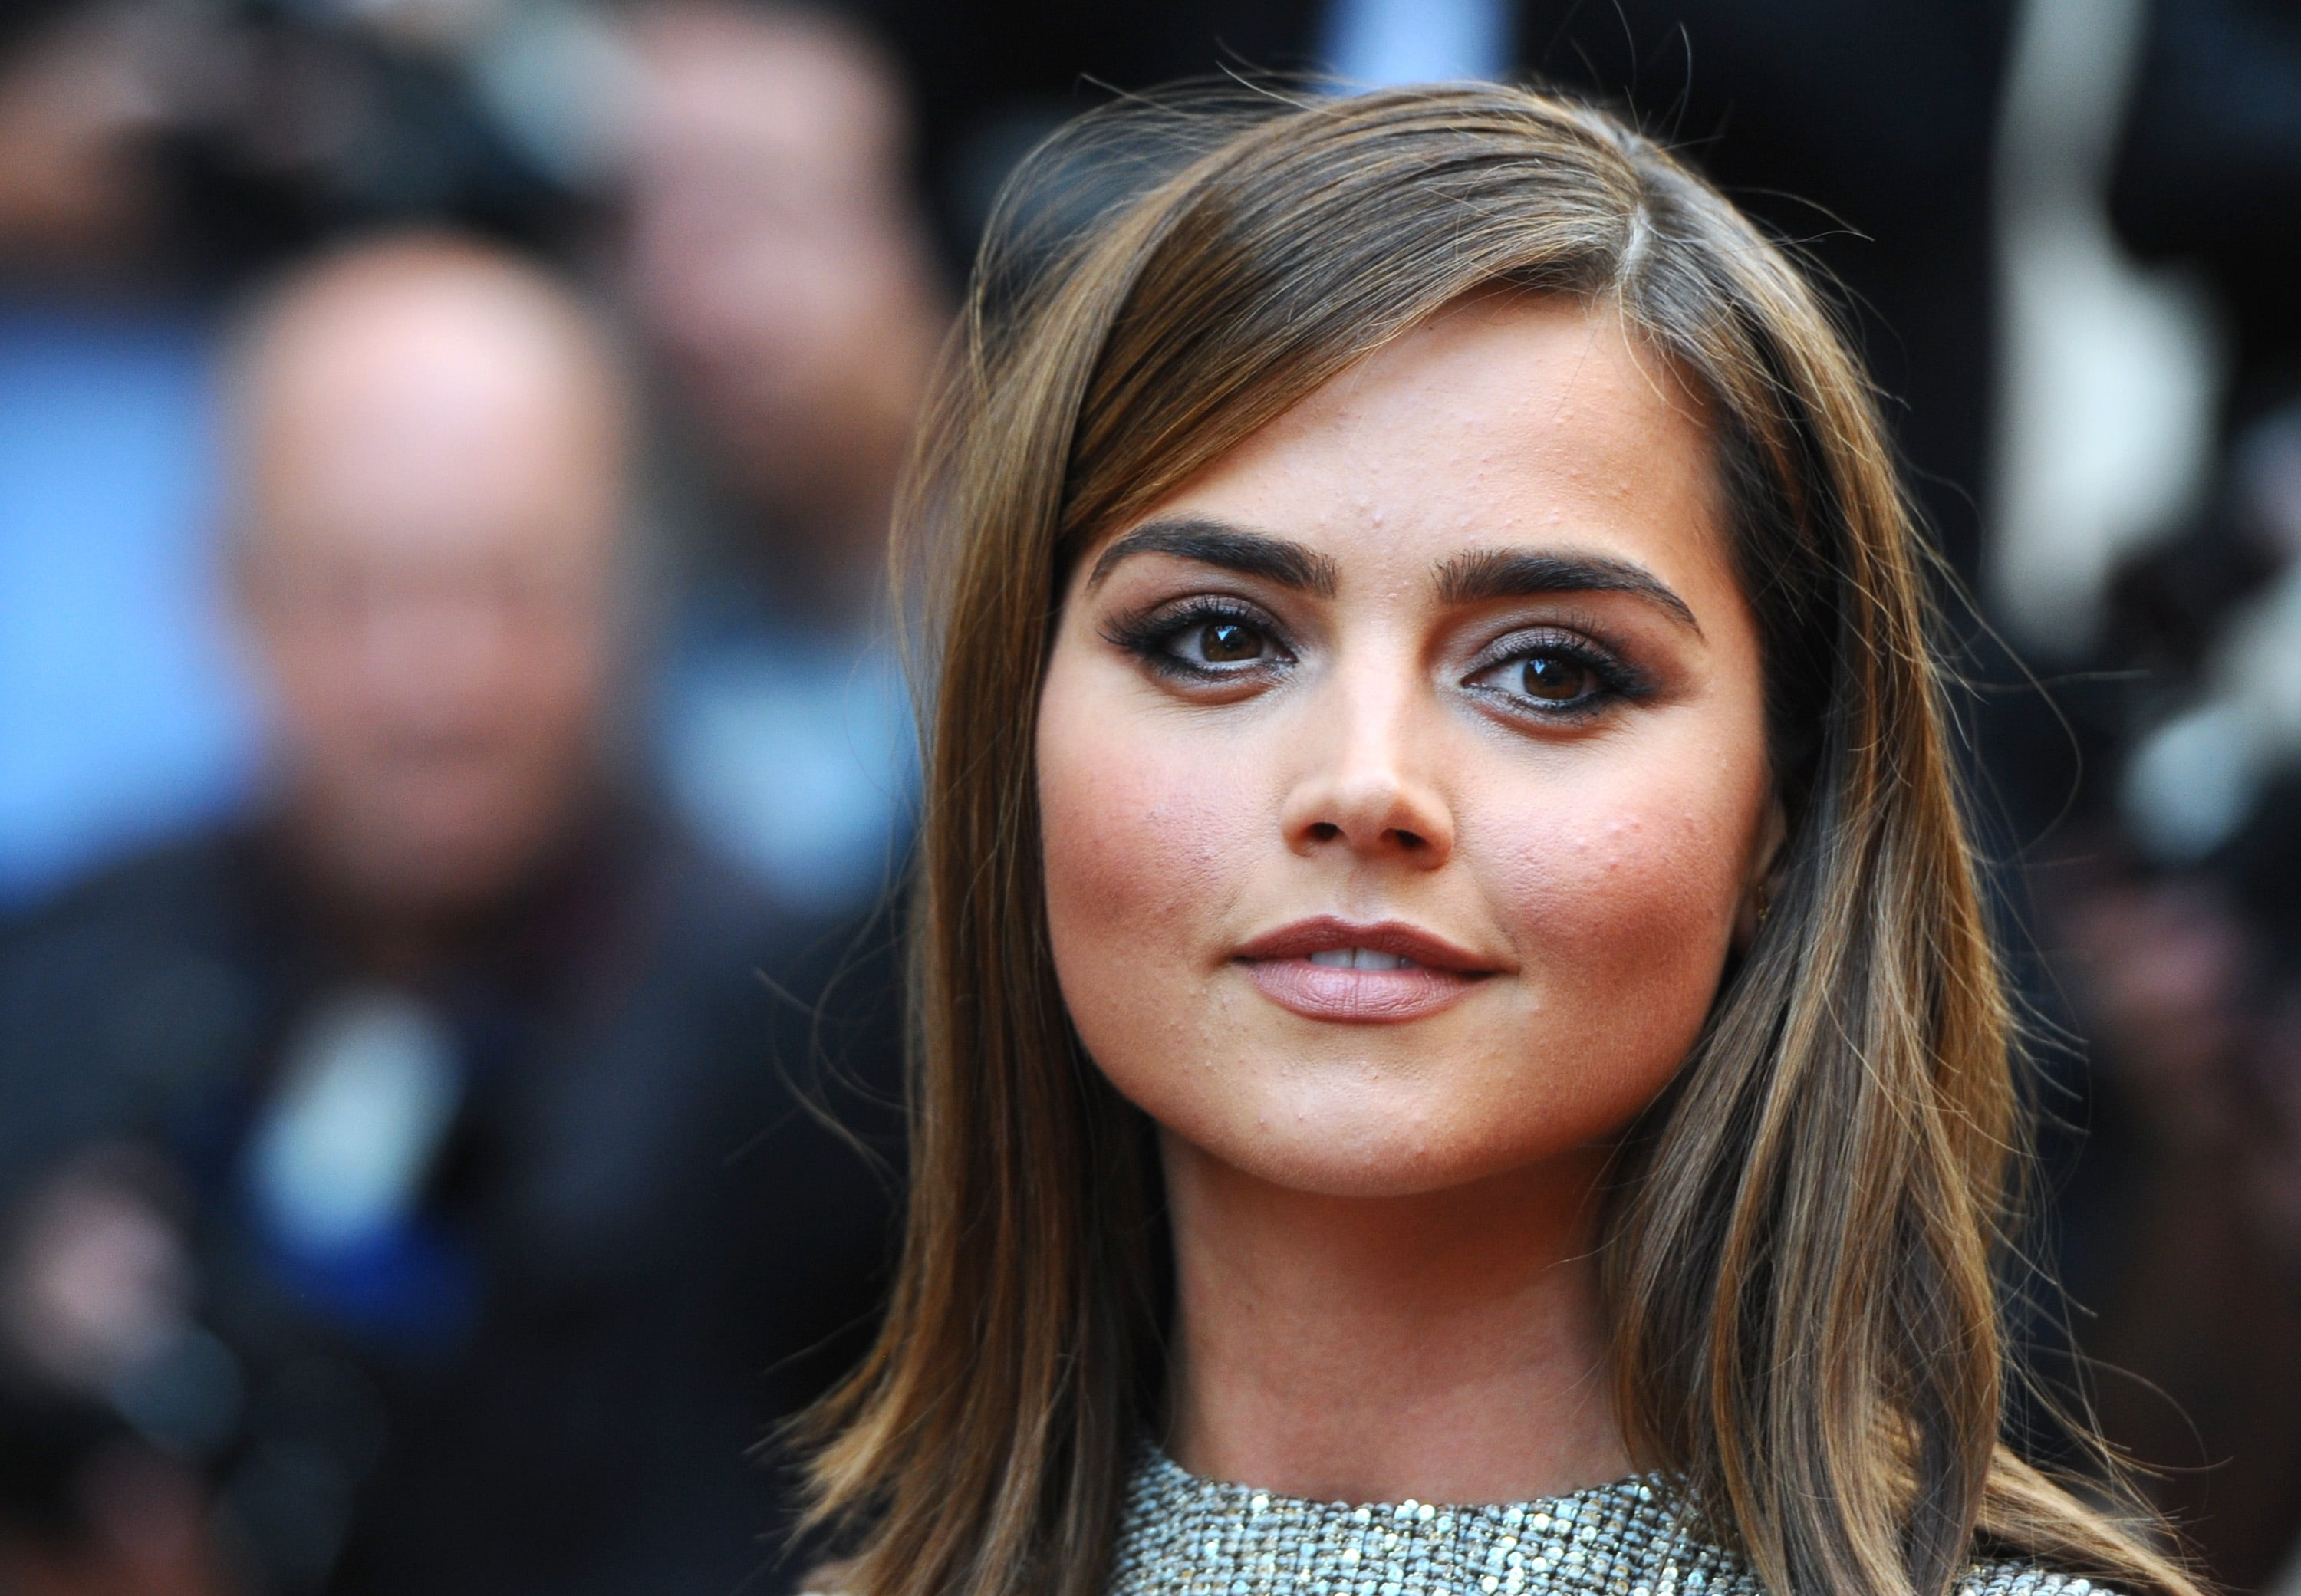 Jenna Coleman Wallpapers hd